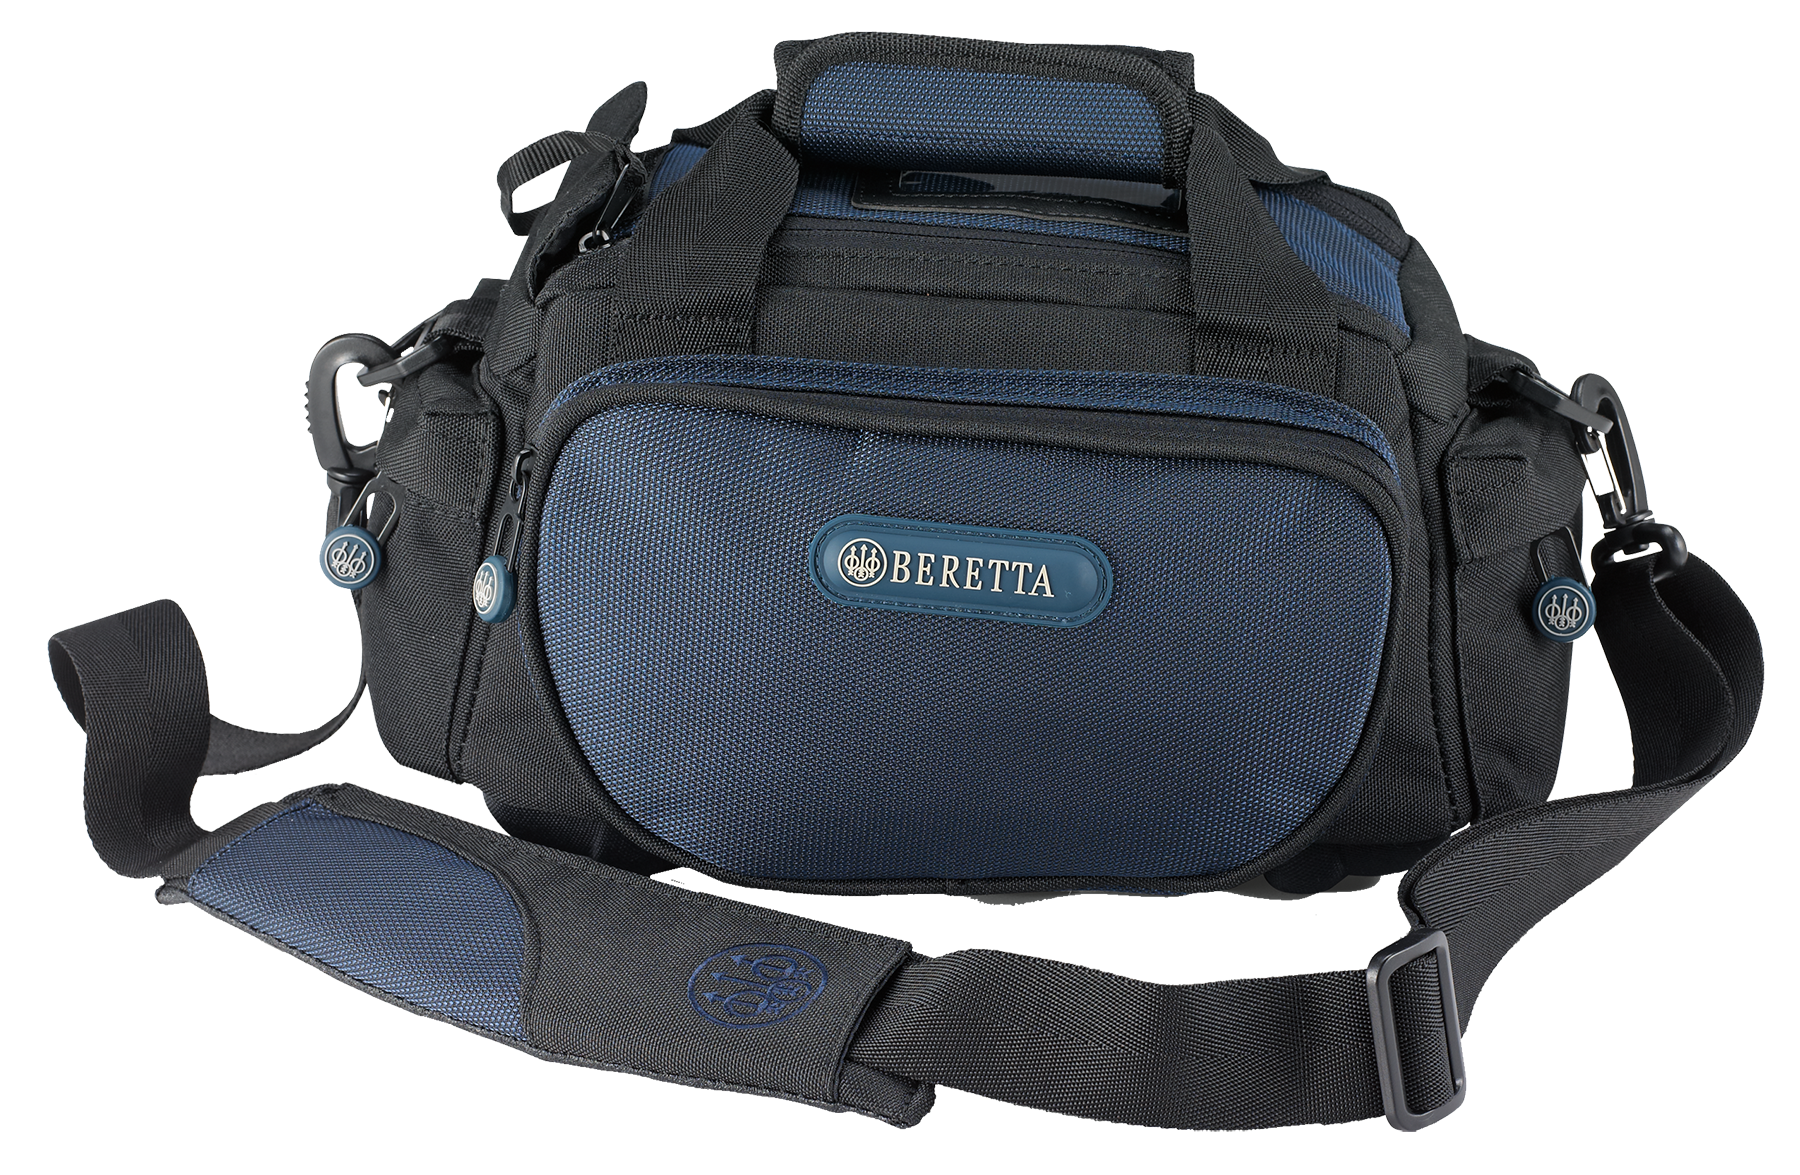 Beretta USA BS2301890501 High Performance Range Bag Compact Wide Mouth Nylon 11